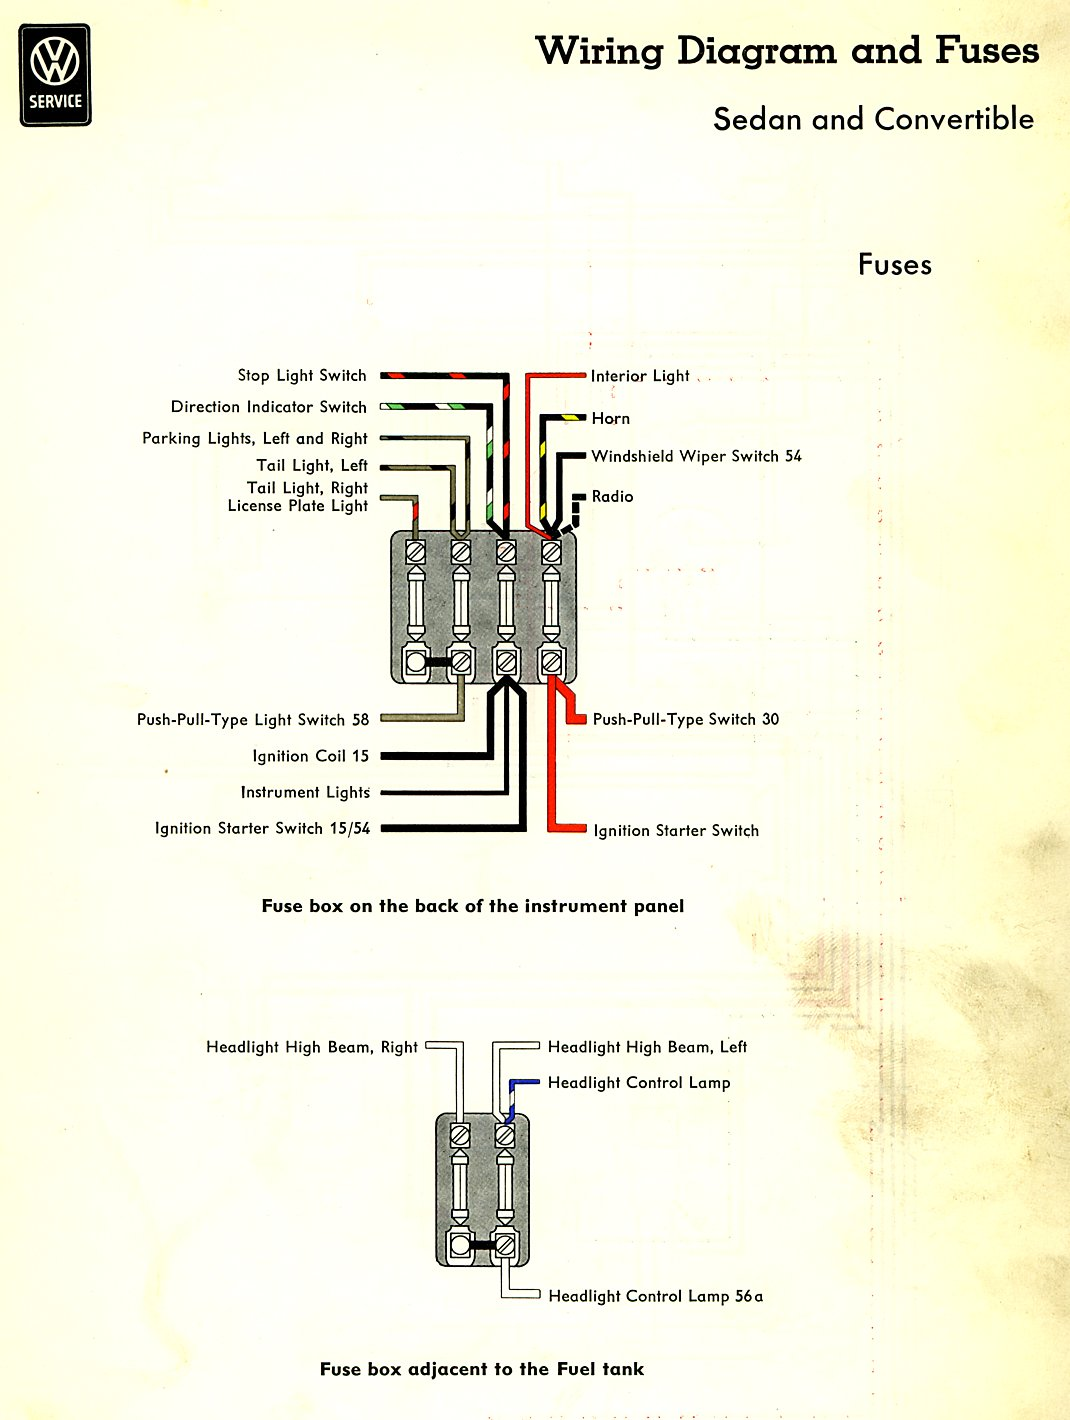 bug_58_fuses thesamba com type 1 wiring diagrams 1969 vw bug fuse box at aneh.co